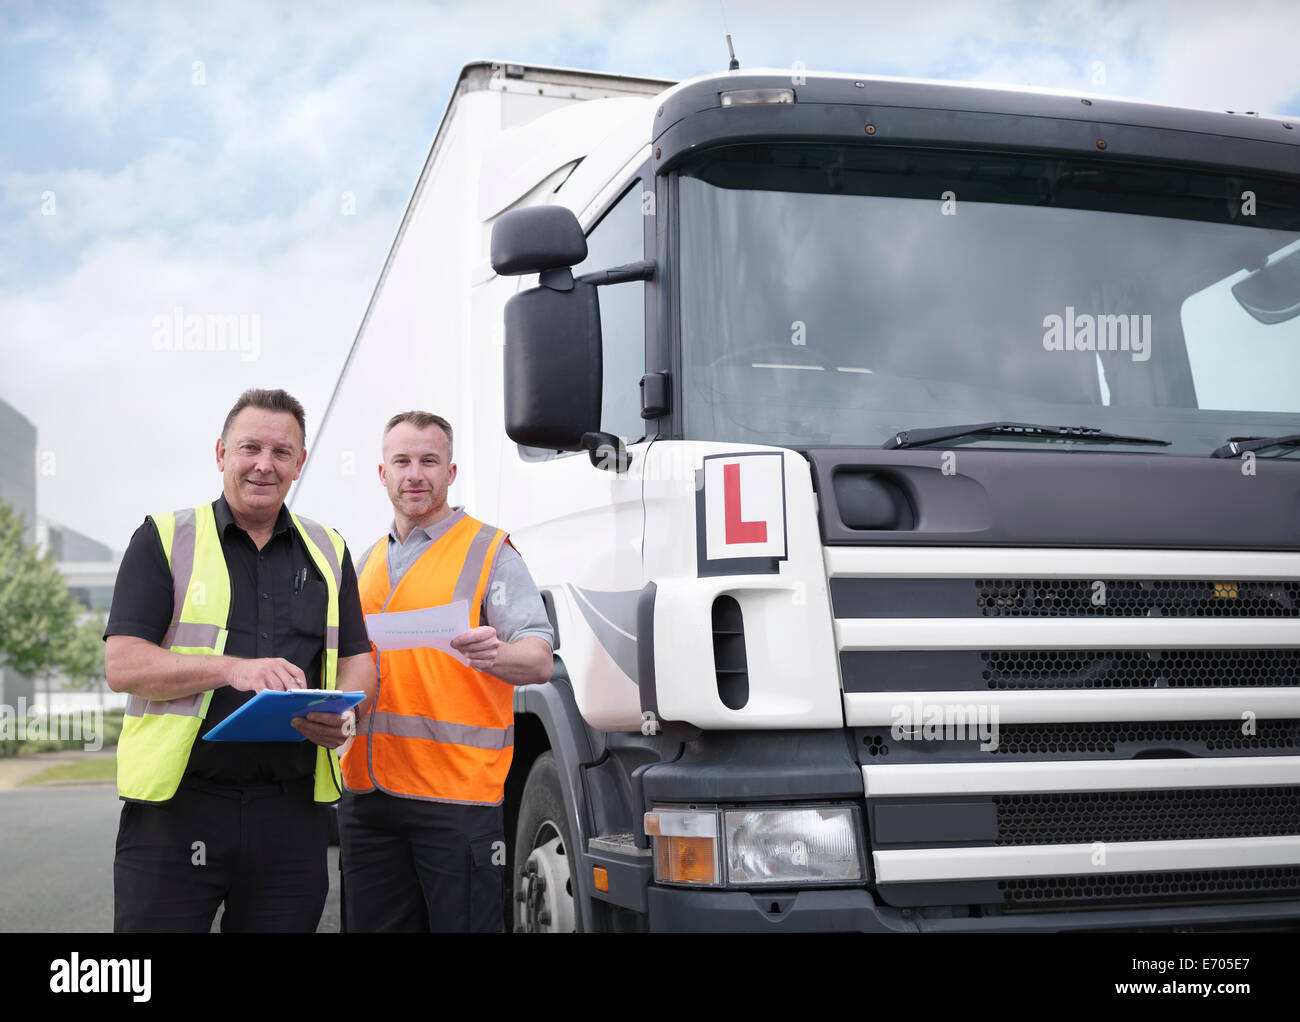 Portrait of trainee truck driver receiving pass certificate from instructor - Stock Image